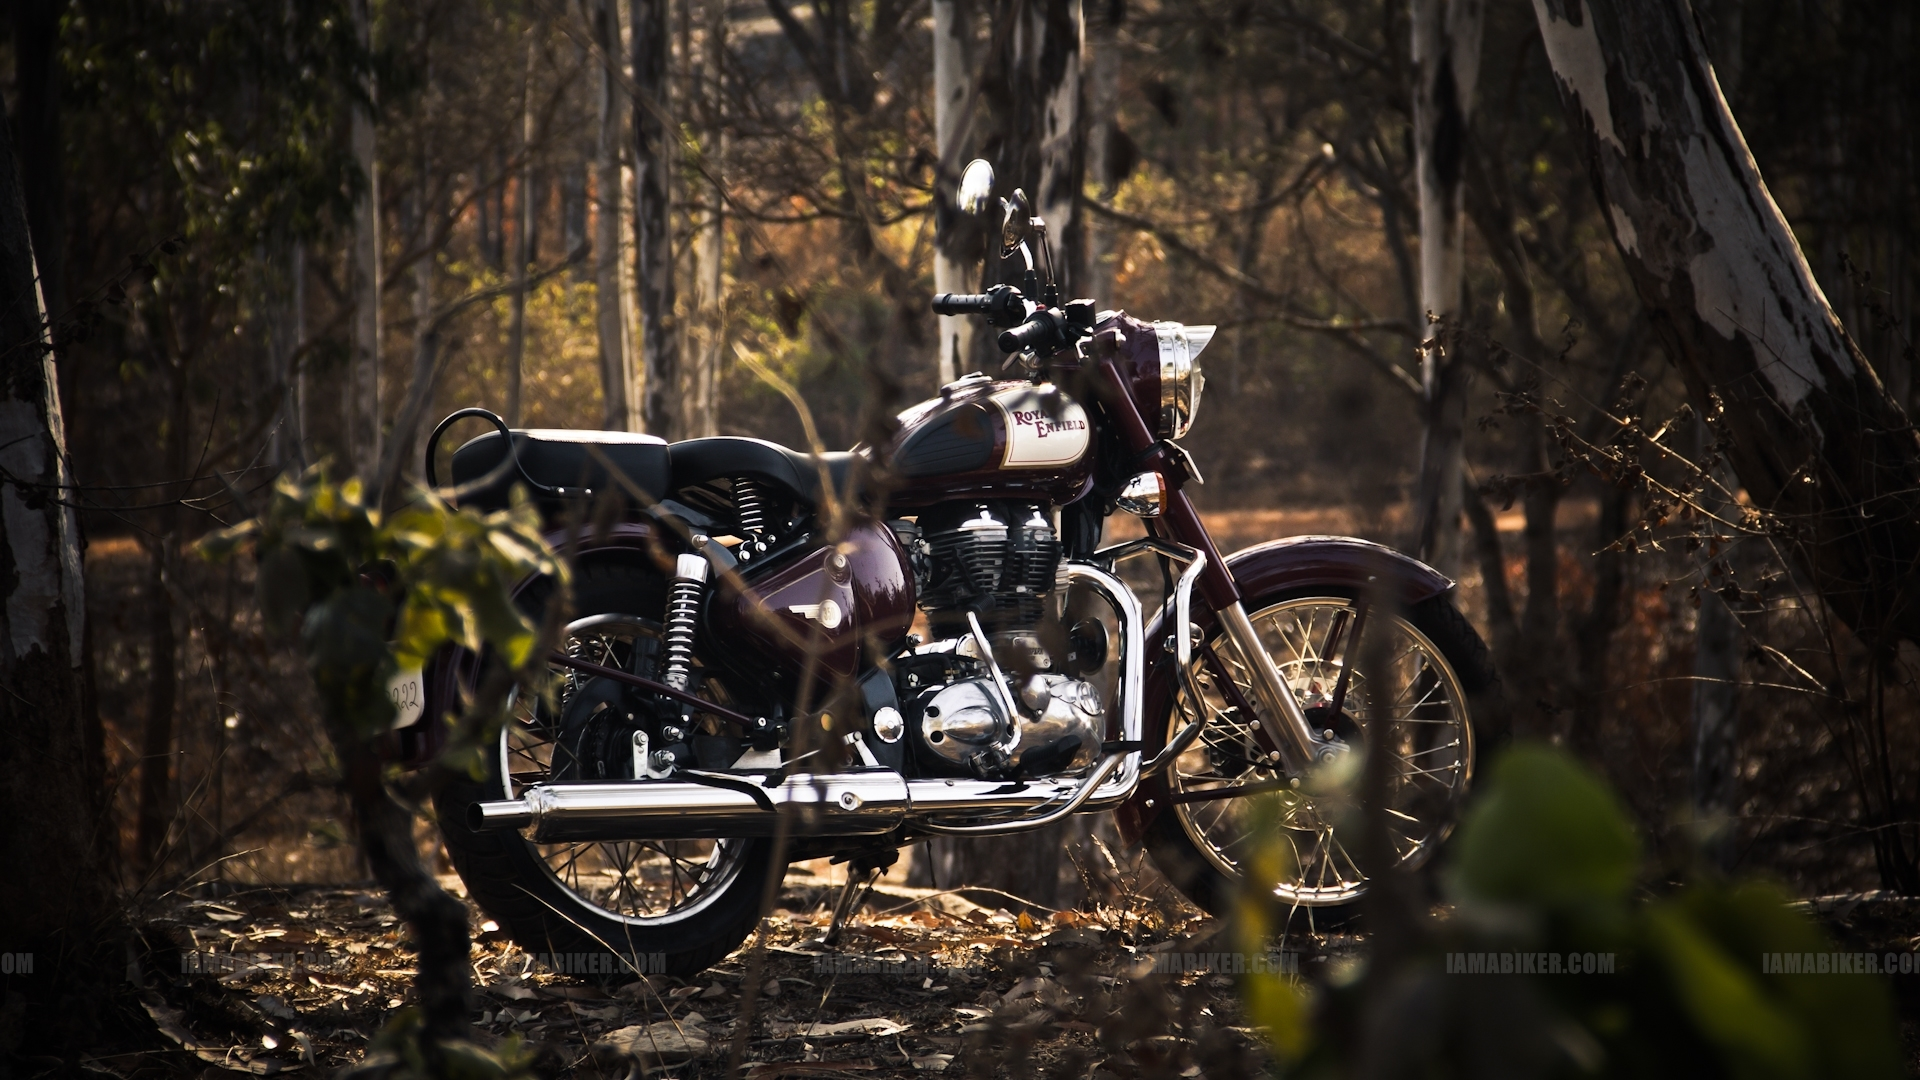 Hd wallpaper royal enfield - Royal Enfield Hd Wallpapers And Royal Enfield Classic 350 Wallpapers